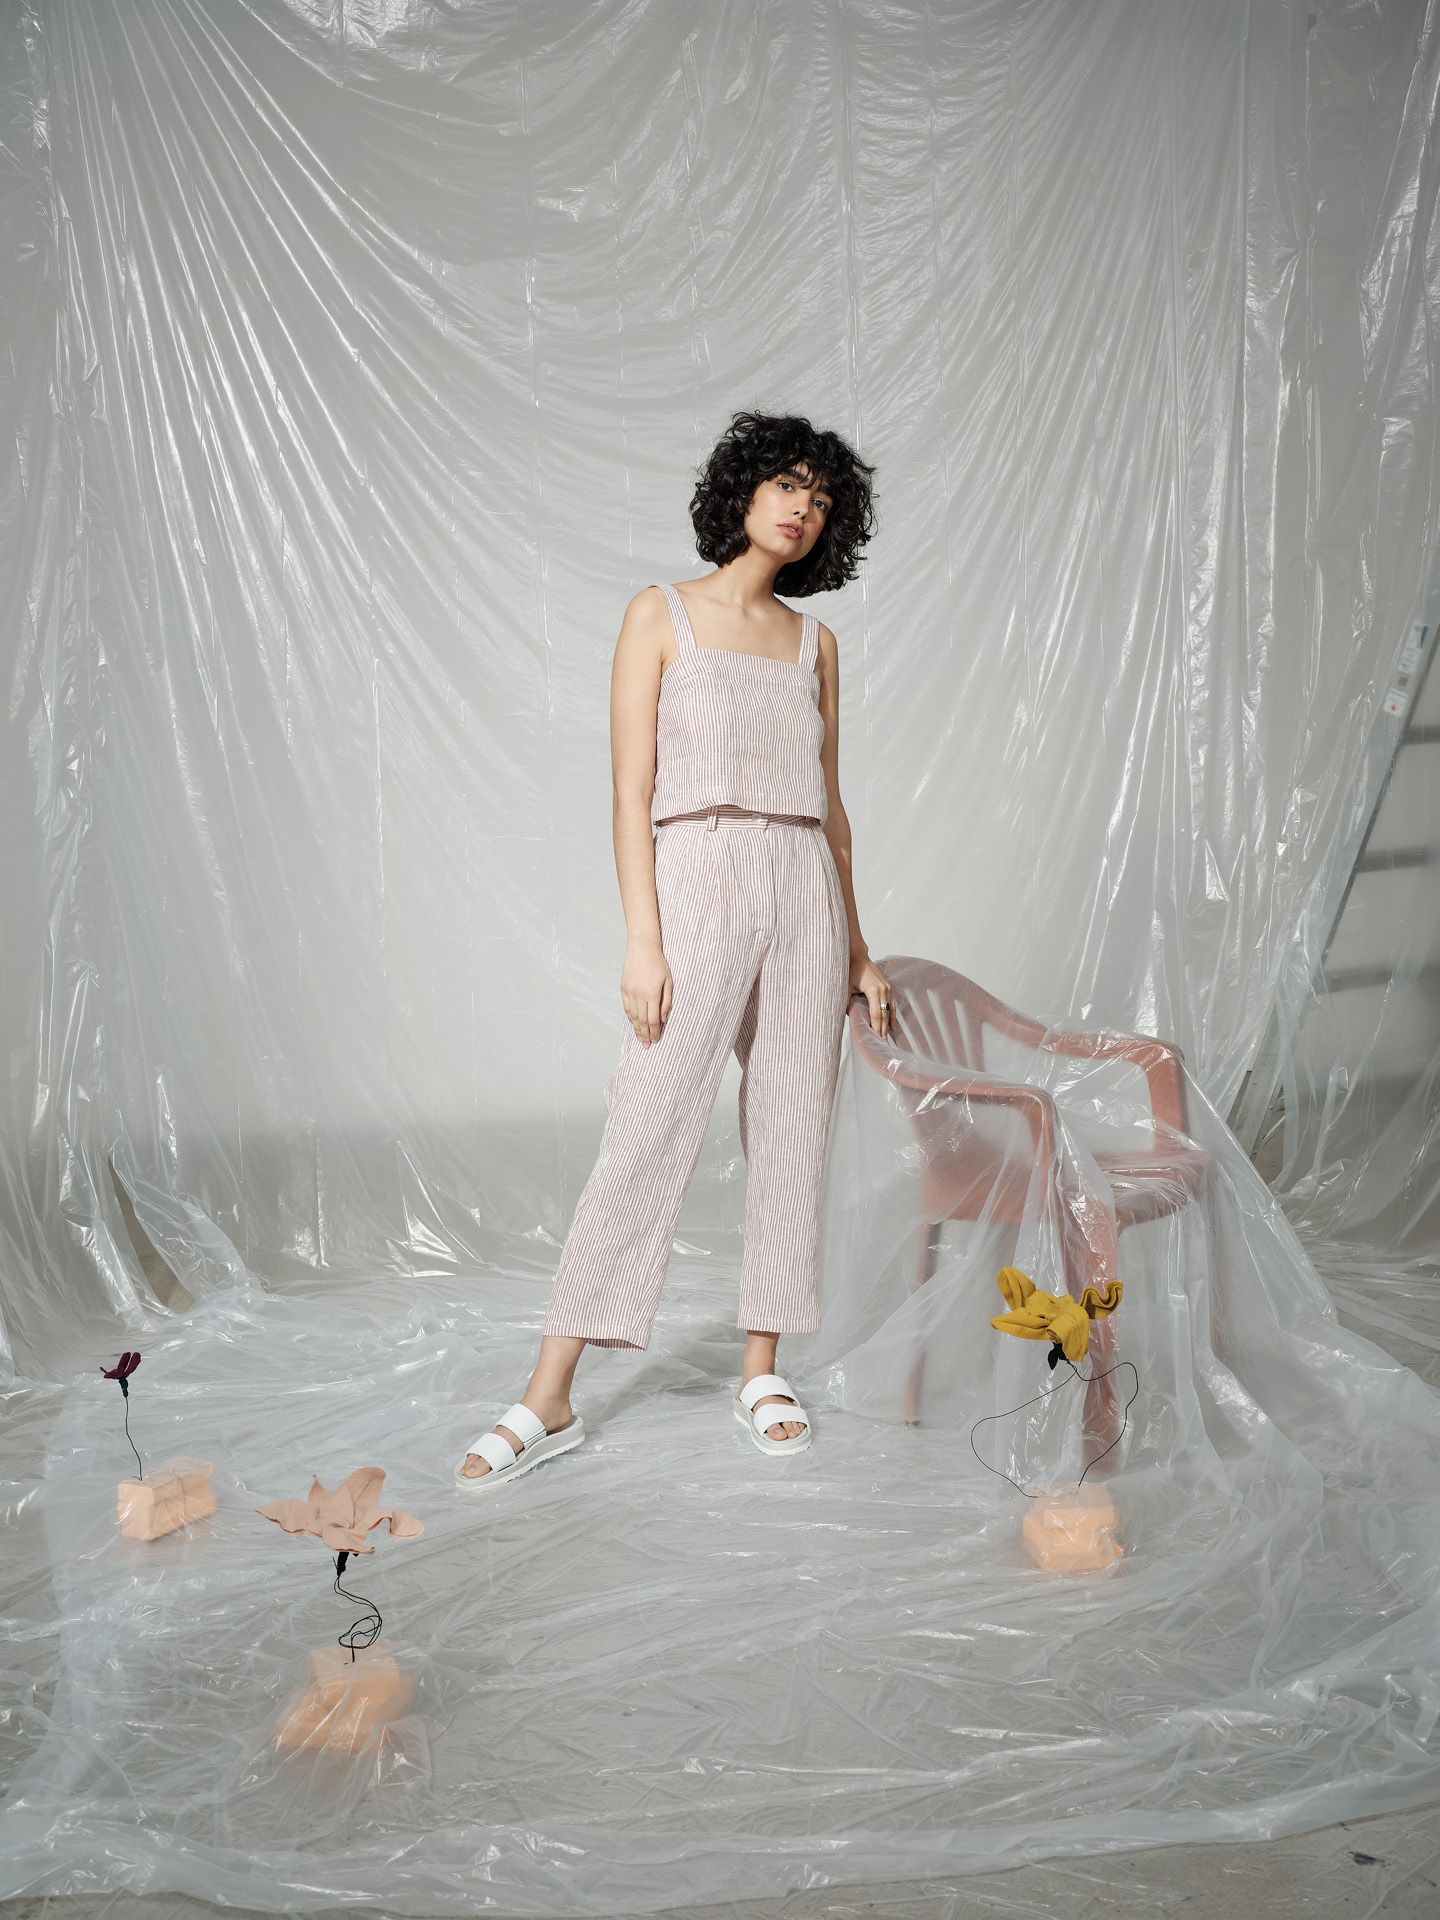 curly haired female model wearing soft pink and white stripped ensemble standing next to pink plastic chair covered in plastic construction sheet looking at camera photographed by Maxyme G Delisle with artistic direction and styling by Studio TB